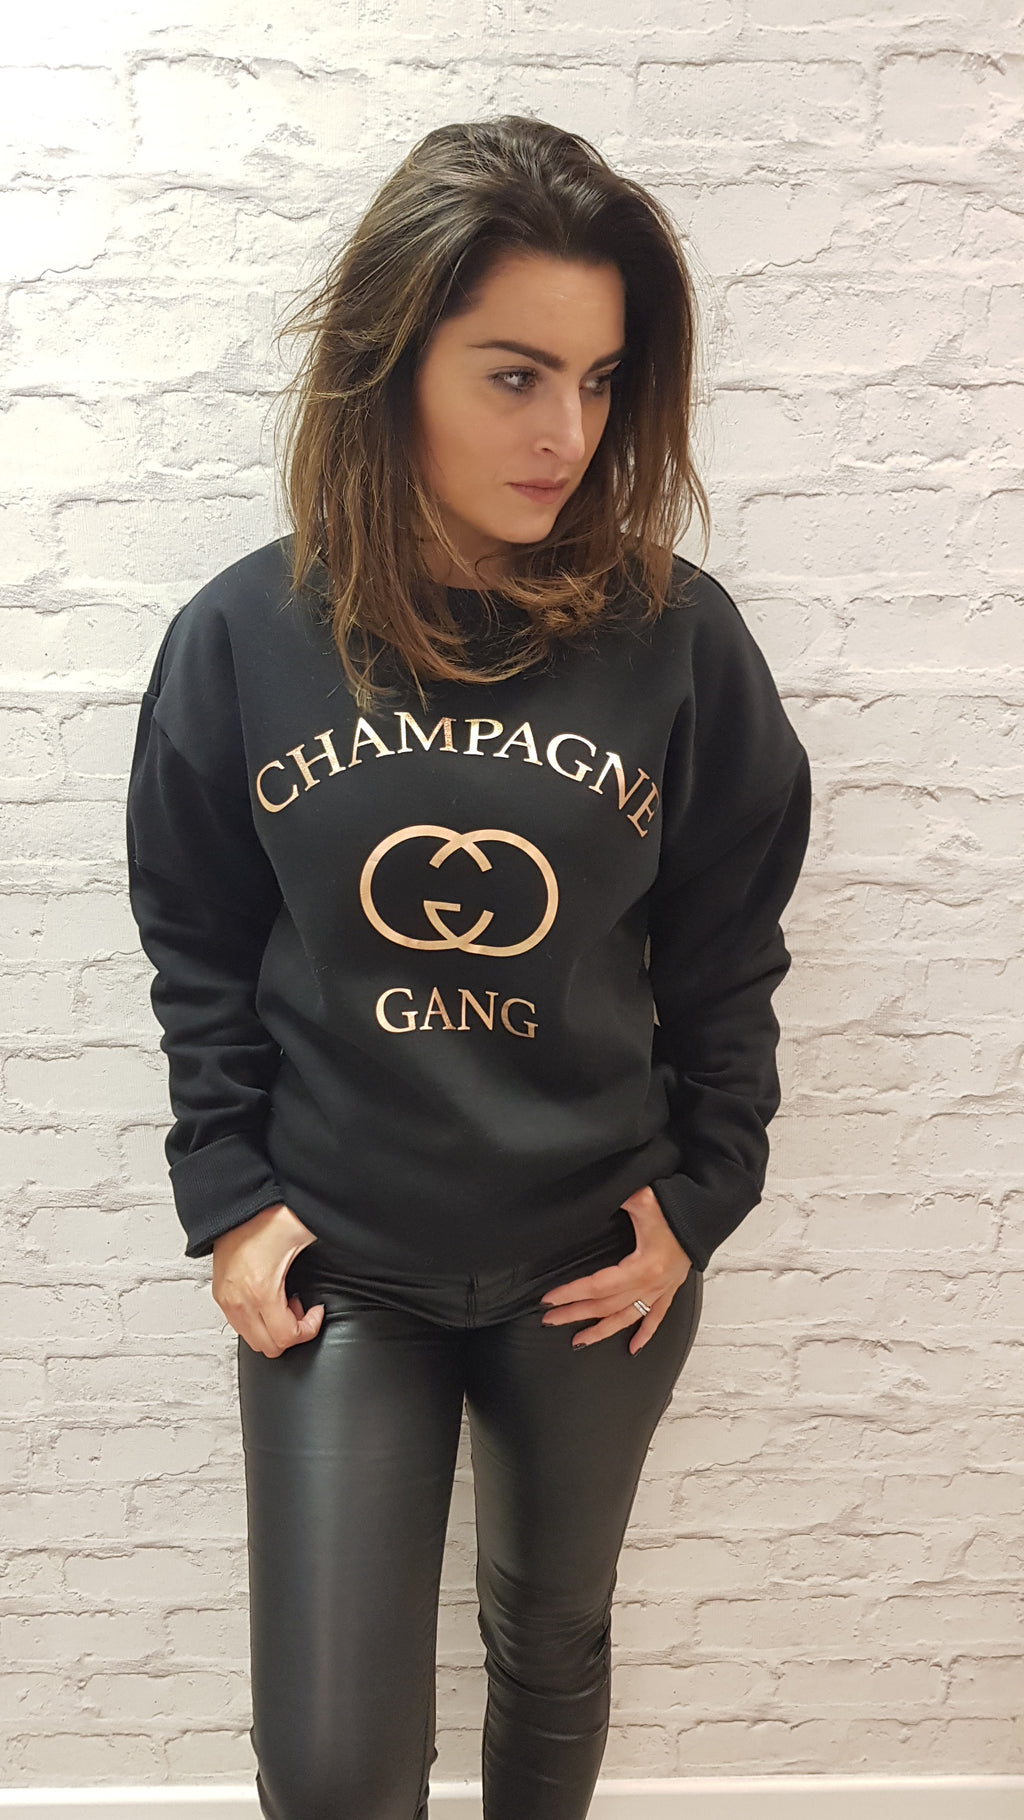 Champagne Club Styled By SOMO - Black